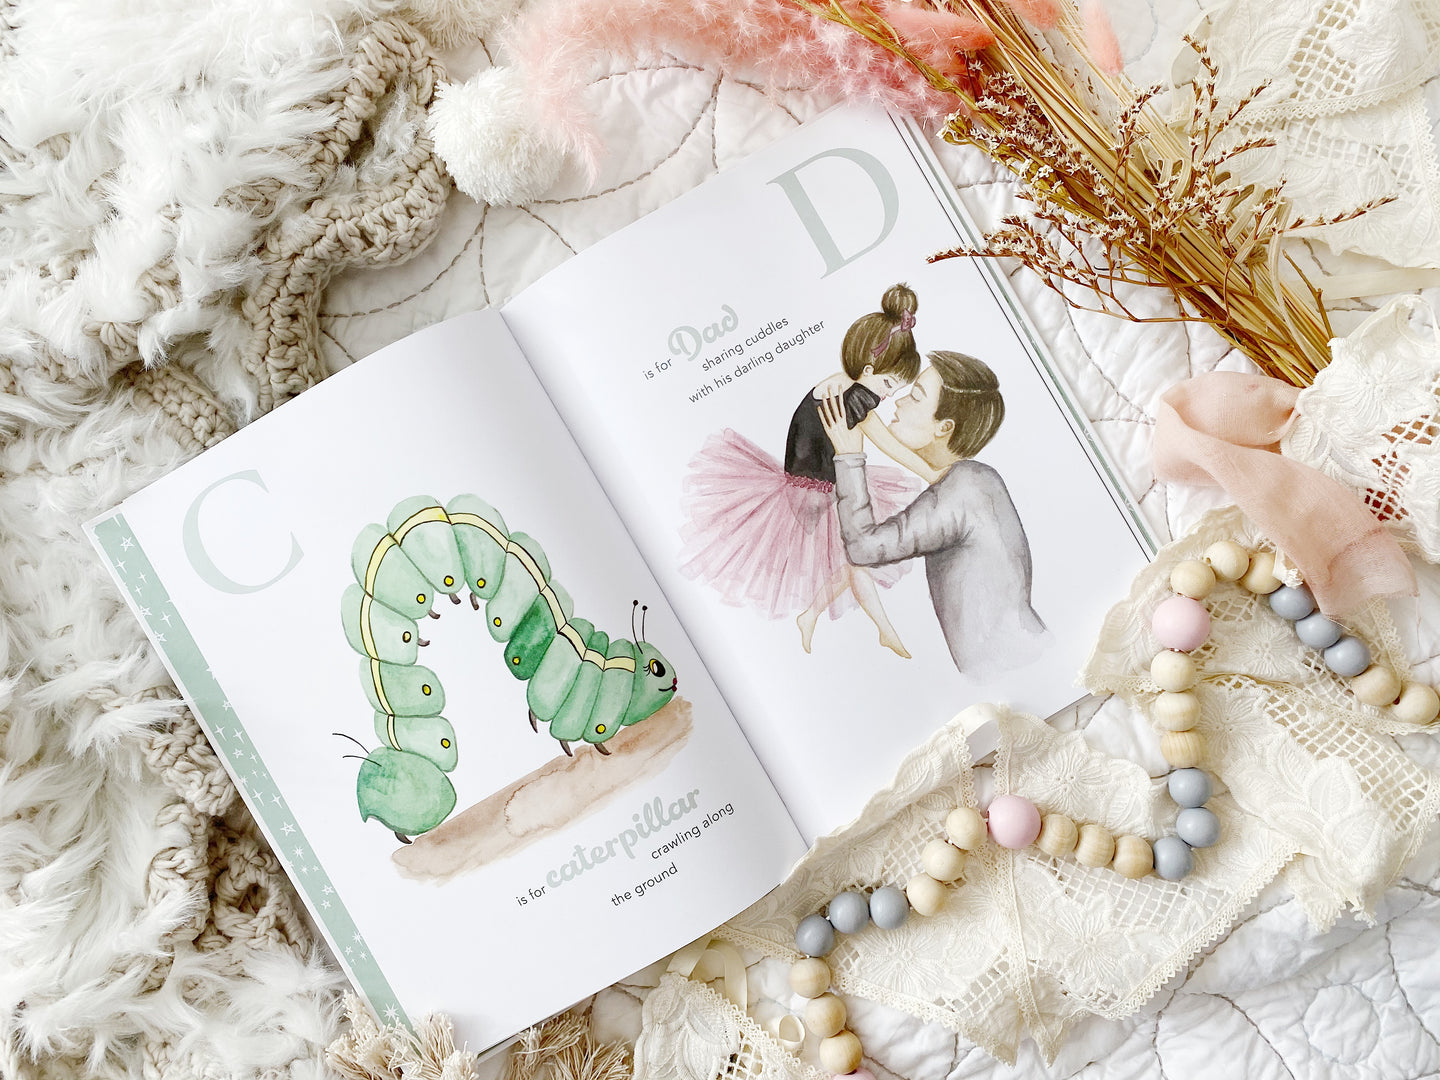 A Collection of magical and whimsical books and products for your little loves